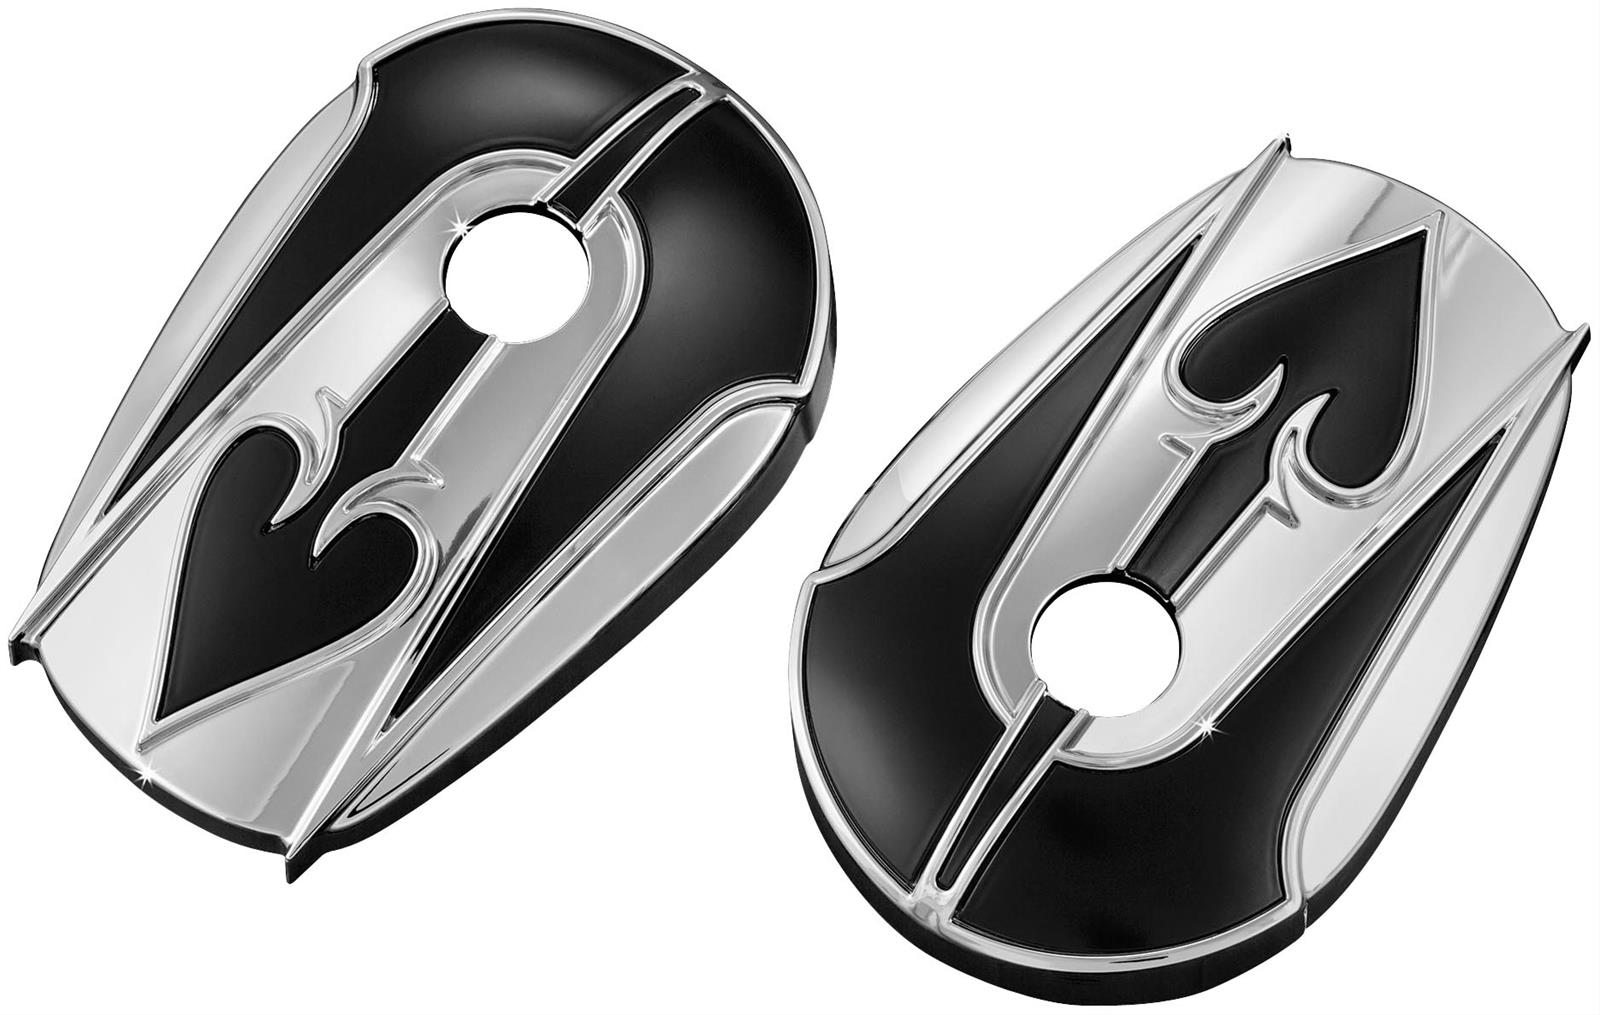 Kuryakyn ace of spades mirror accent covers 1755 free for Mirror spades